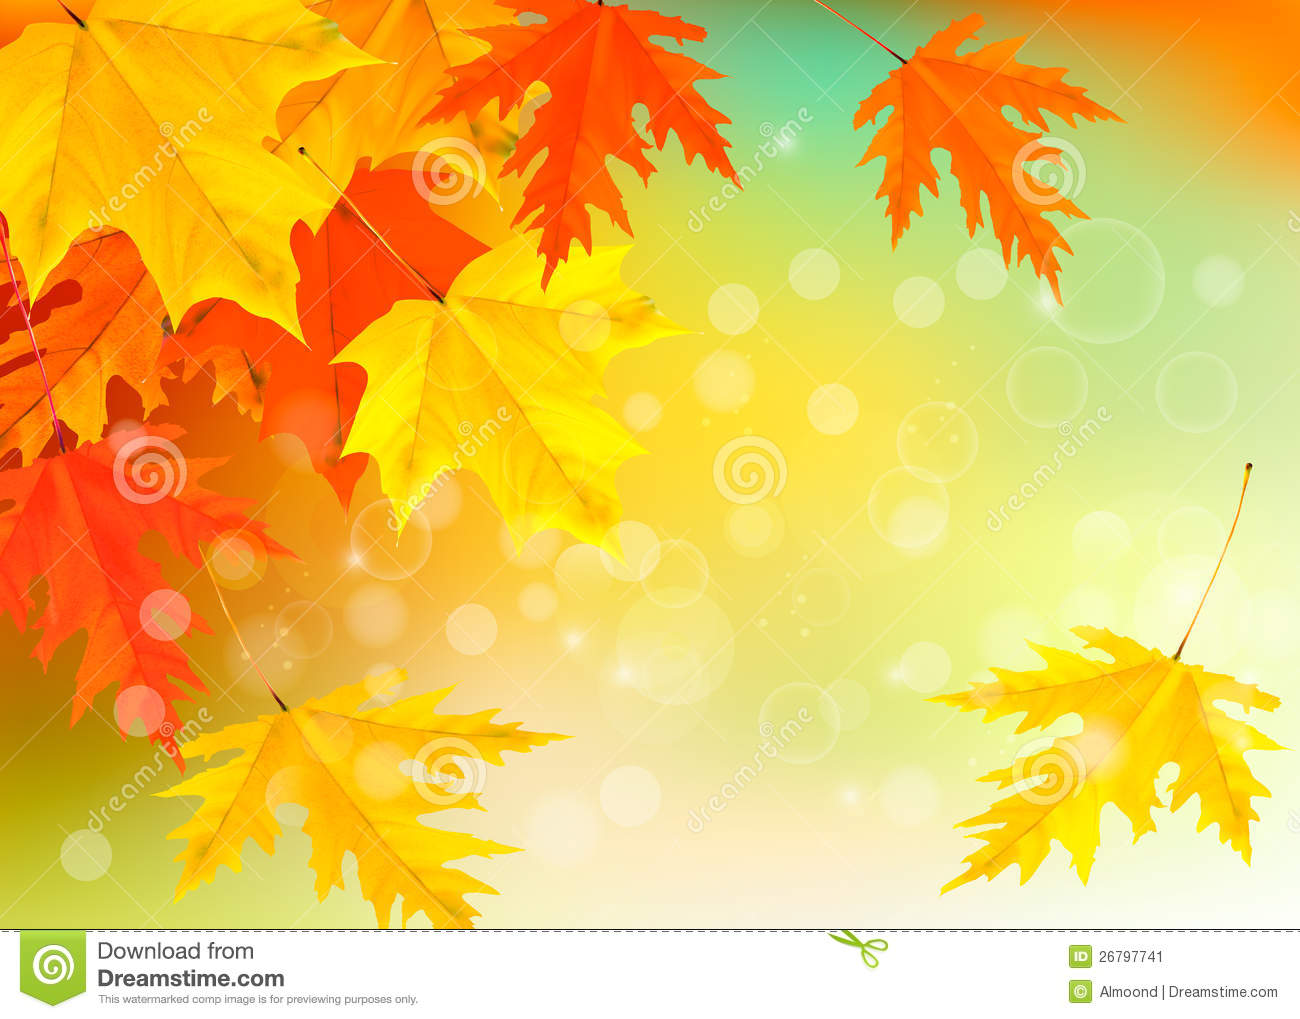 Fall Leaves Falling Wallpaper Autumn Background With Leaves Back To School Stock Image